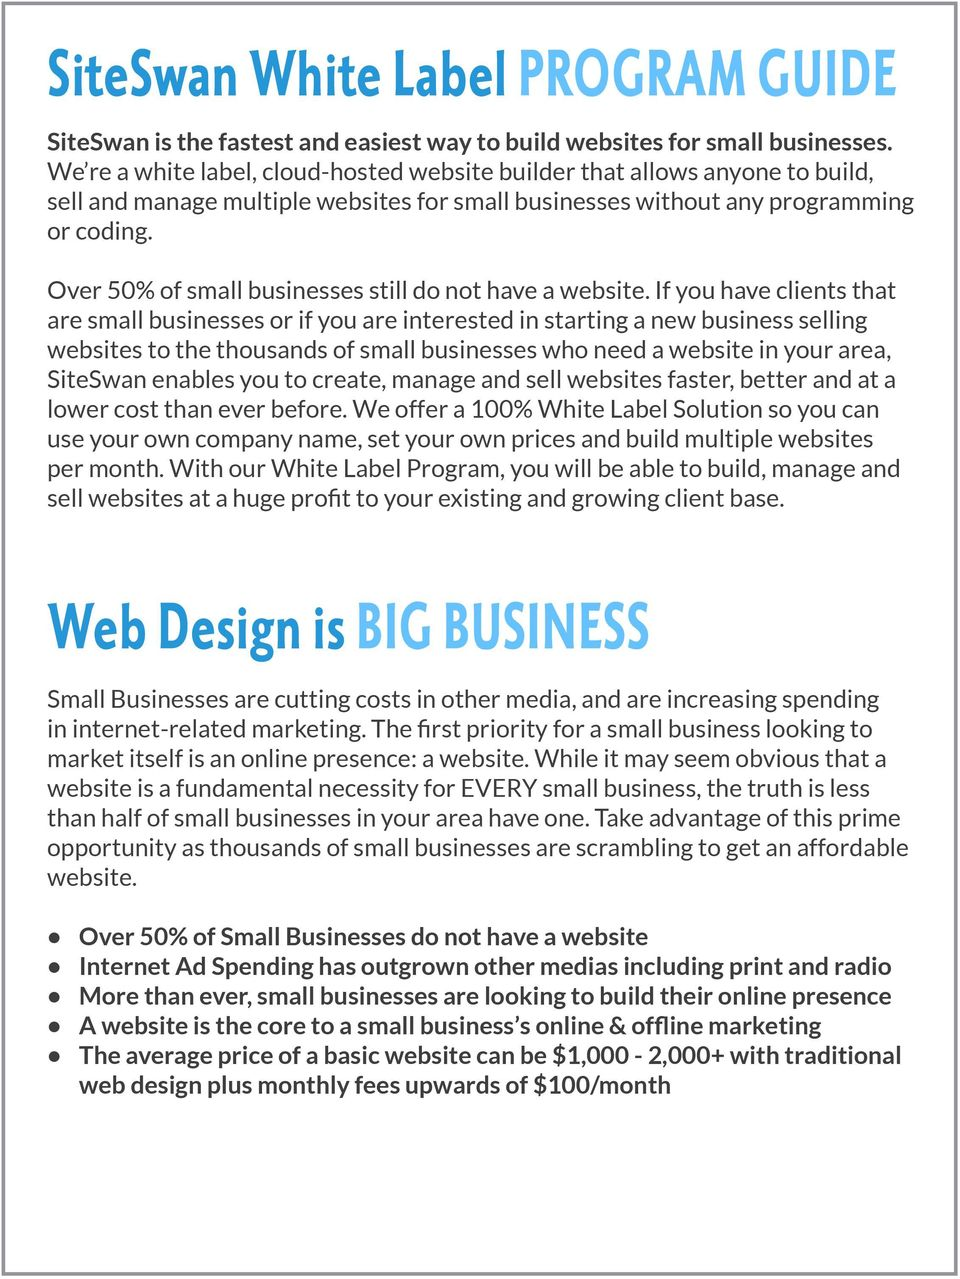 Over 50% of small businesses still do not have a website.